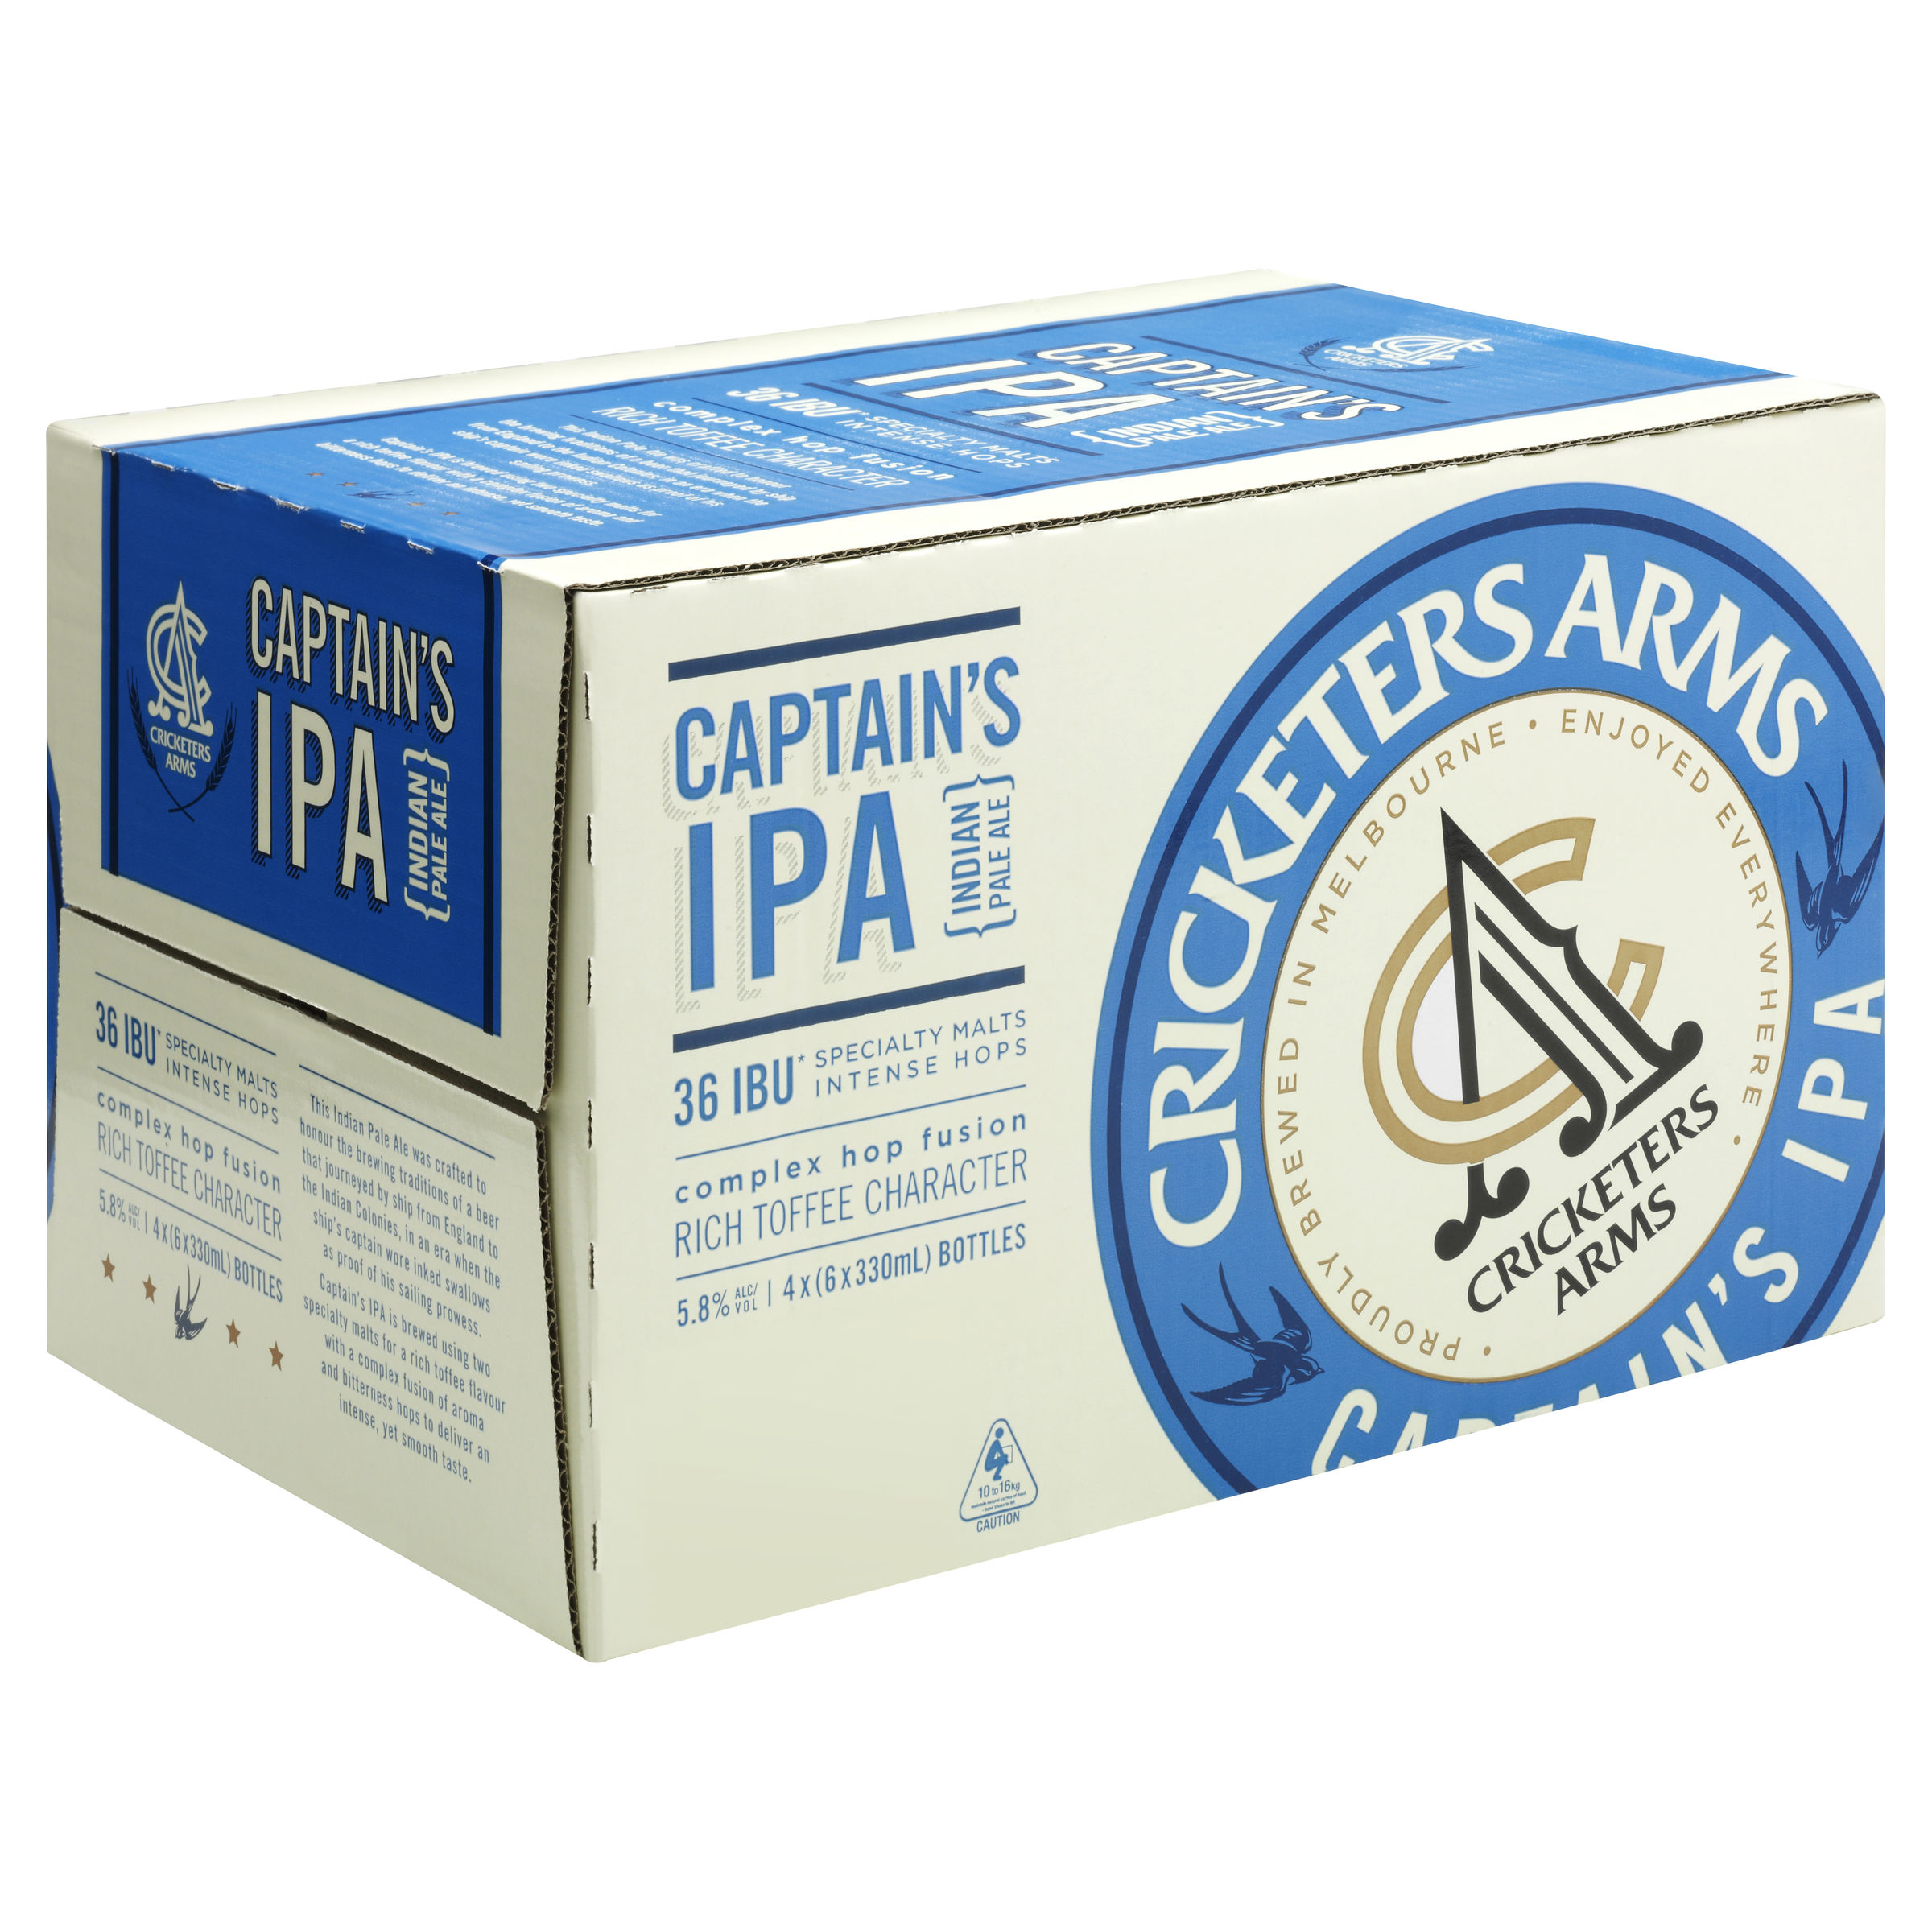 CRICKETERS ARMS CAPTAIN'S INDIA PALE ALE